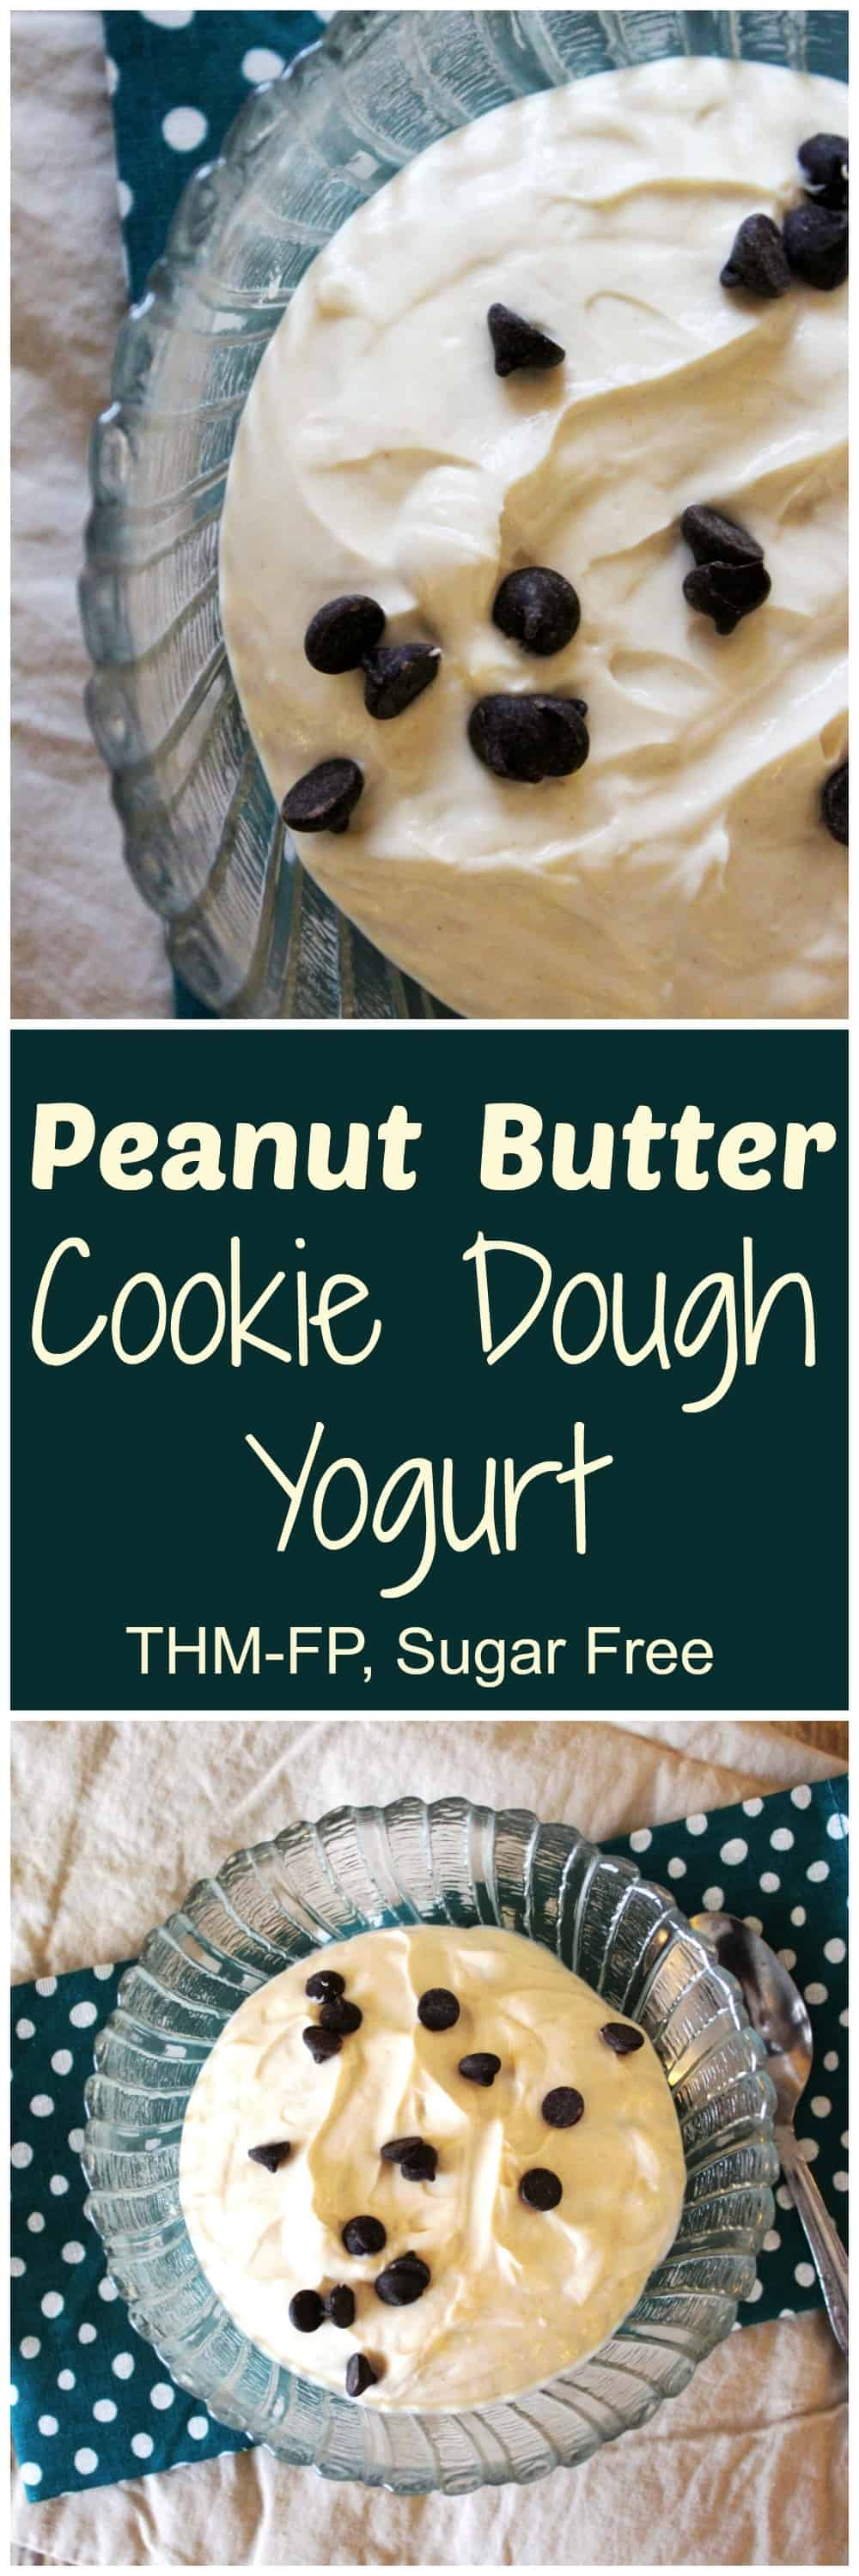 peanut-butter-cookie-dough-yogurt-pinterest